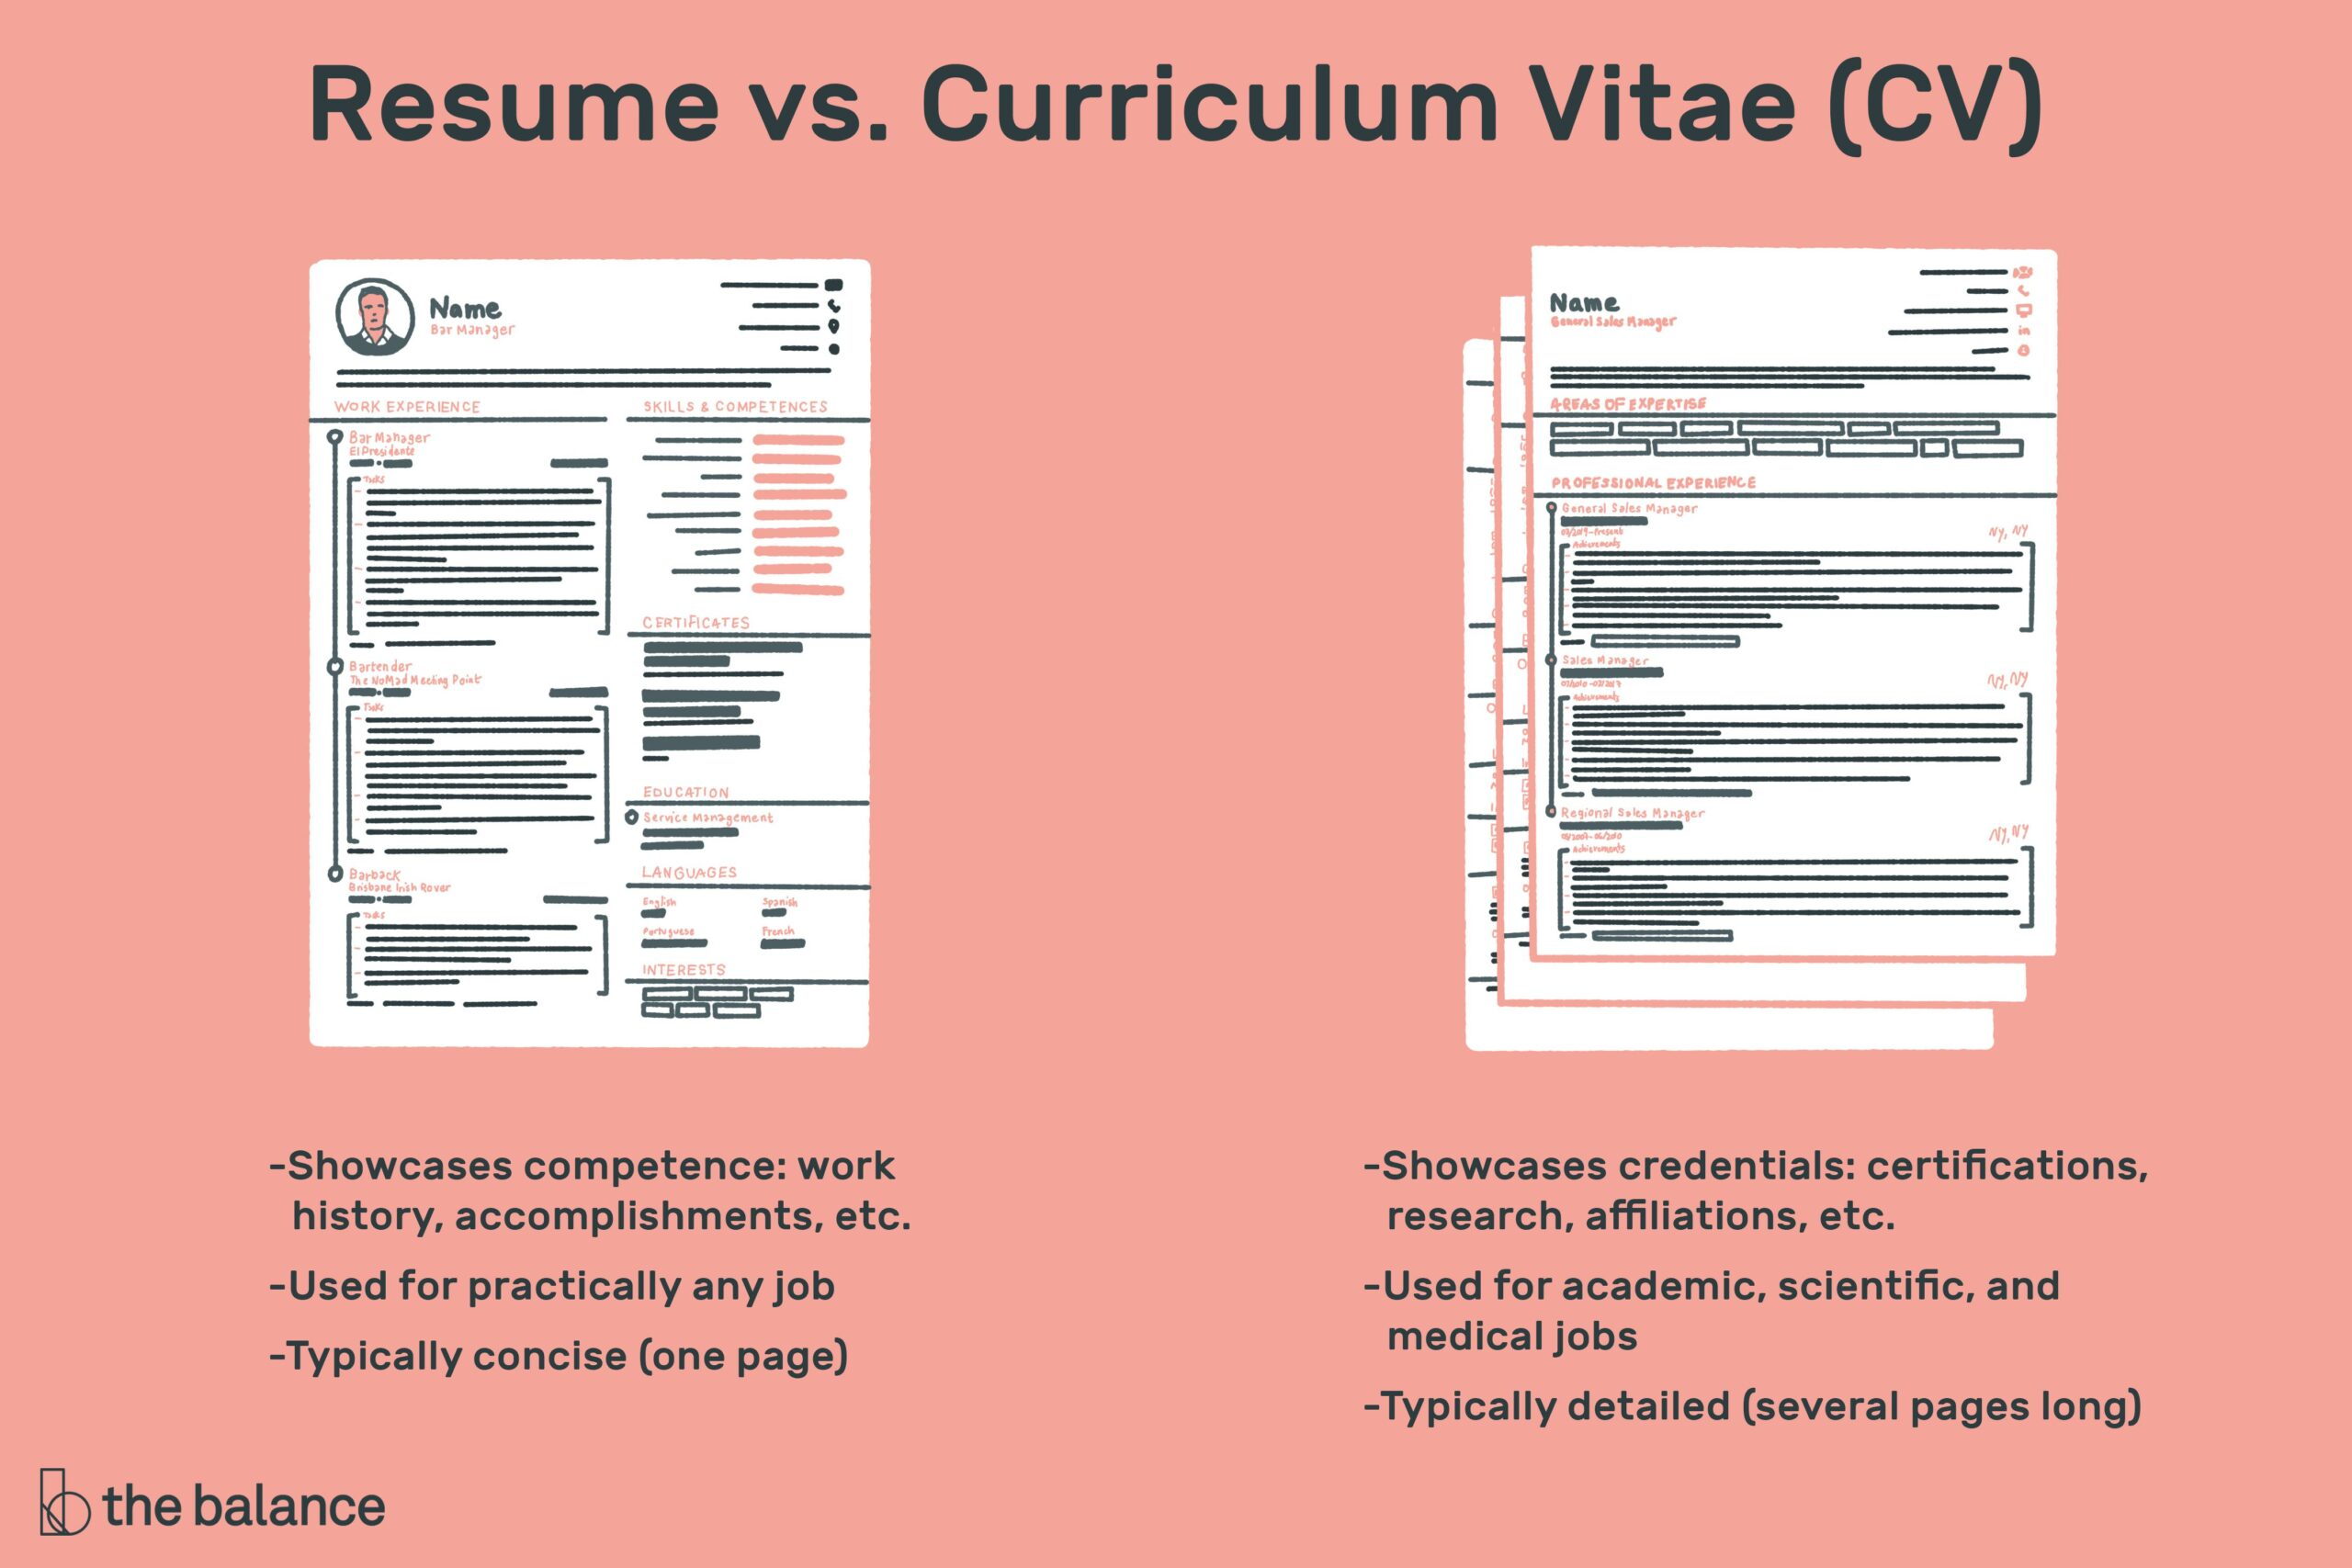 the difference between resume and curriculum vitae another word for customer service on Resume Another Word For Customer Service On Resume